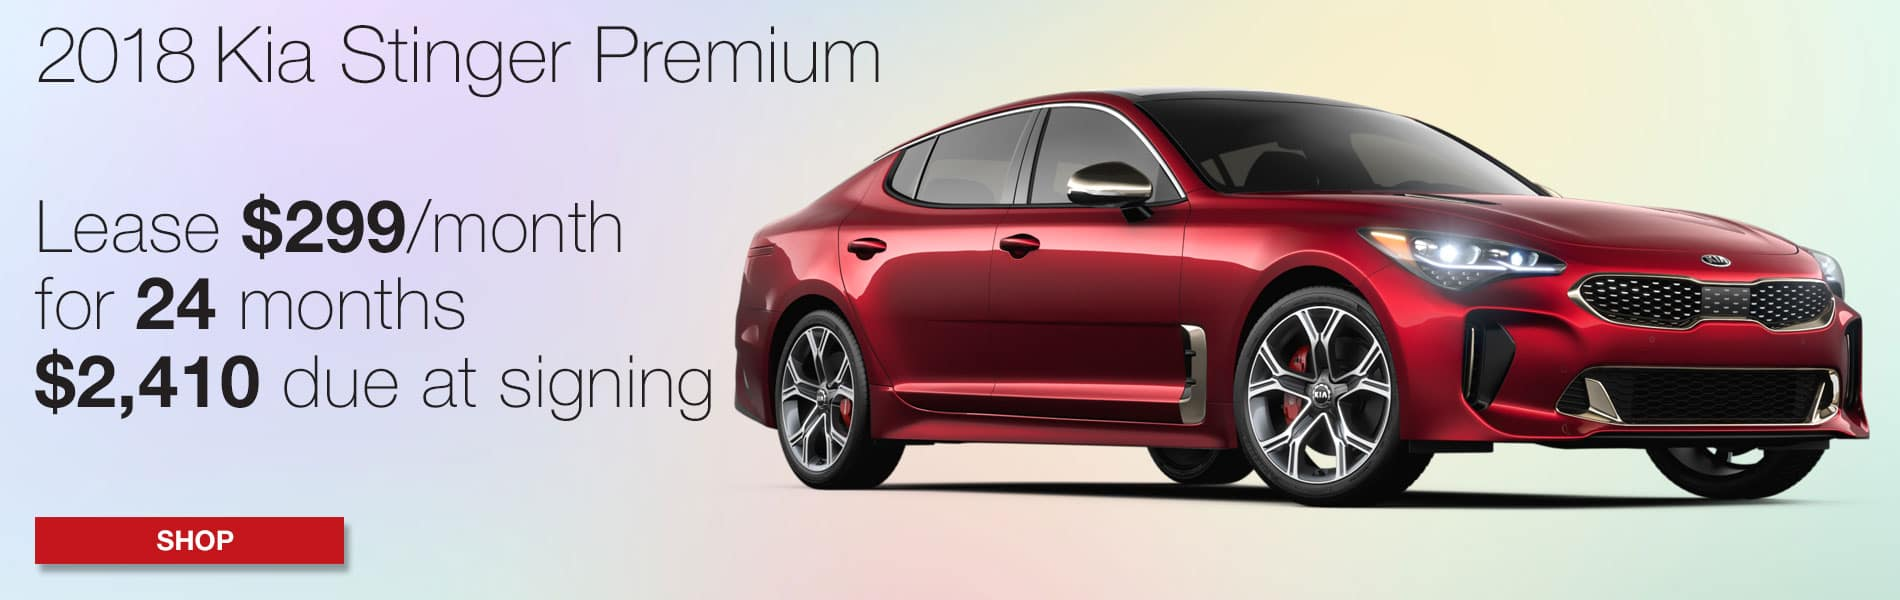 Lease a 2018 Kia Stinger Premium for $299 per month with $2,410 due at signing